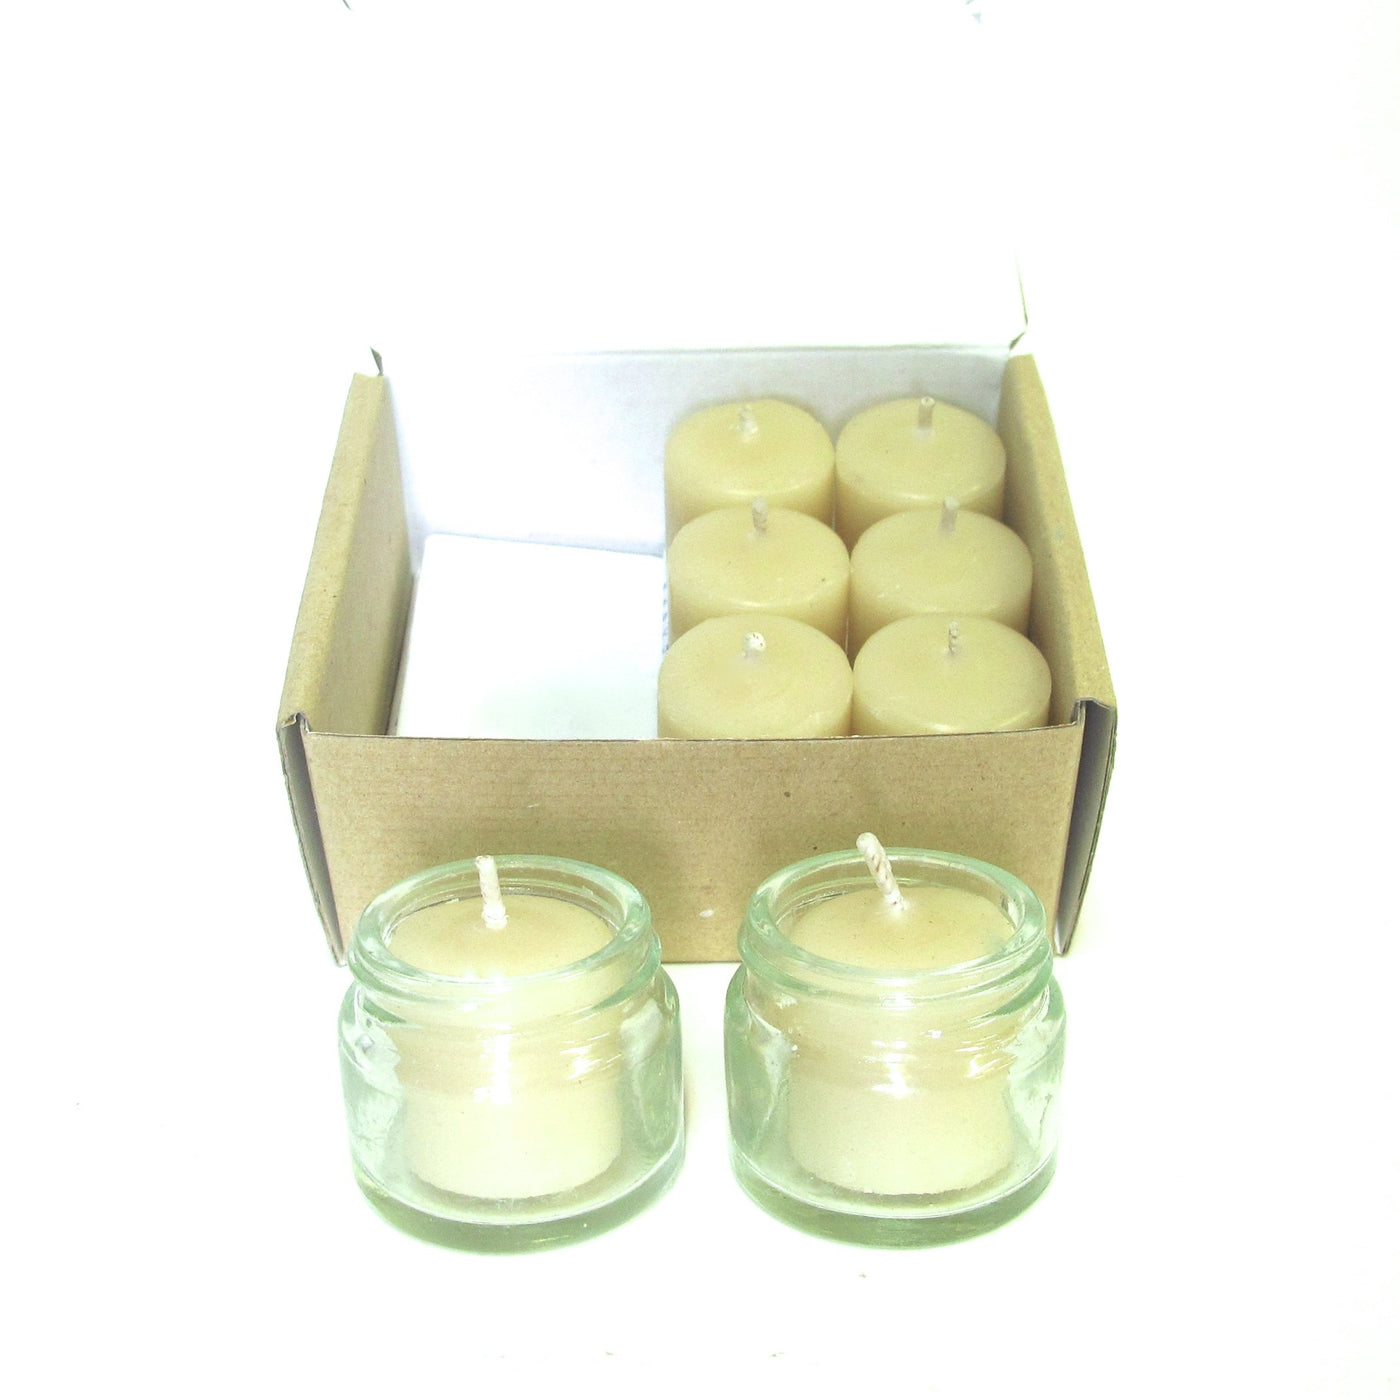 Jam Jar Tealights - the wait is over